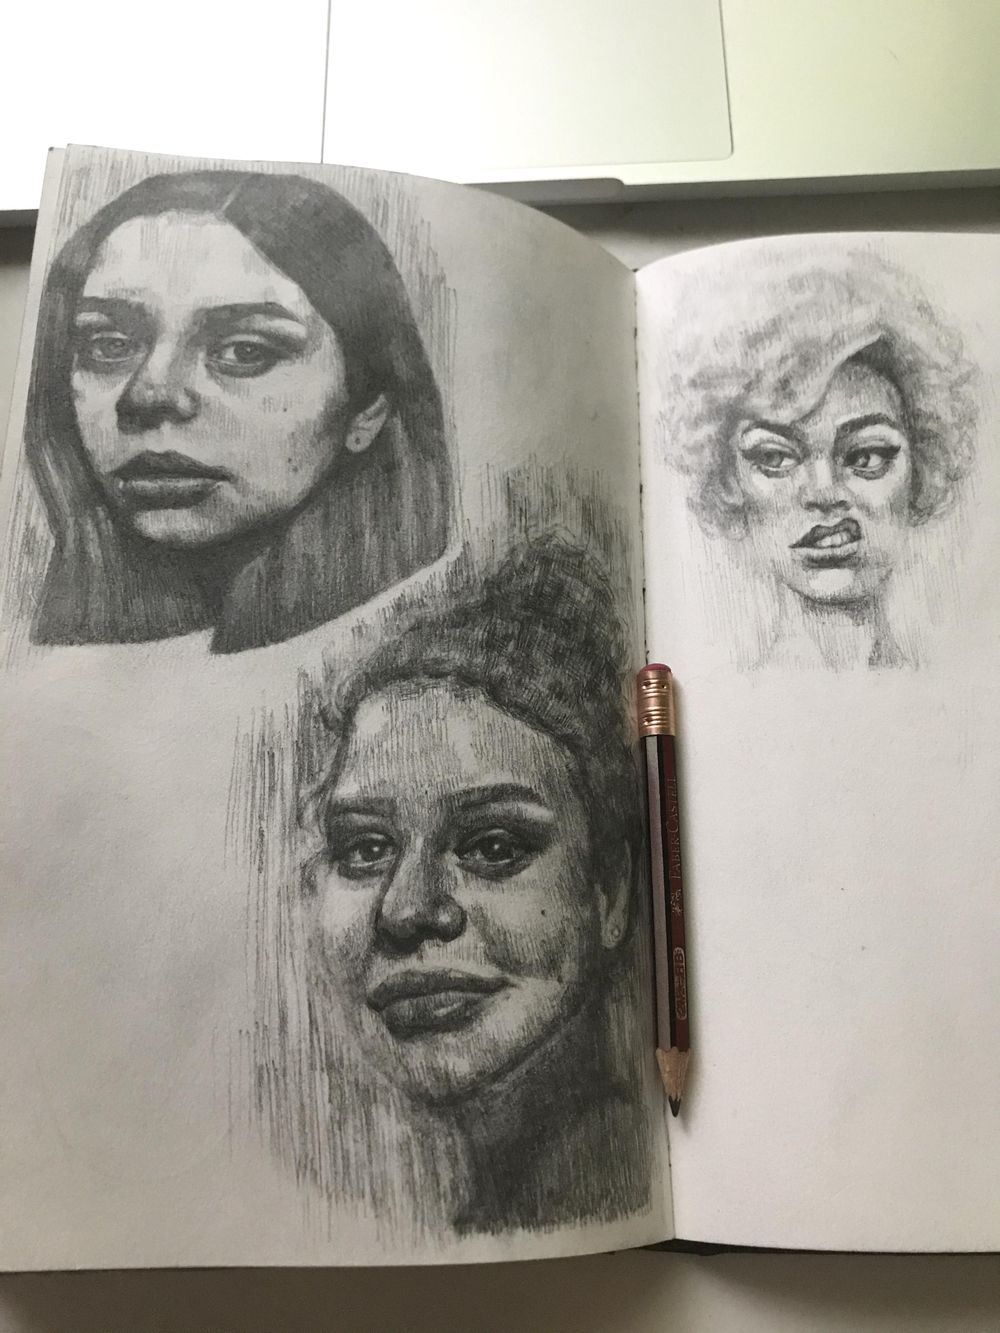 portrait drawings! - image 3 - student project